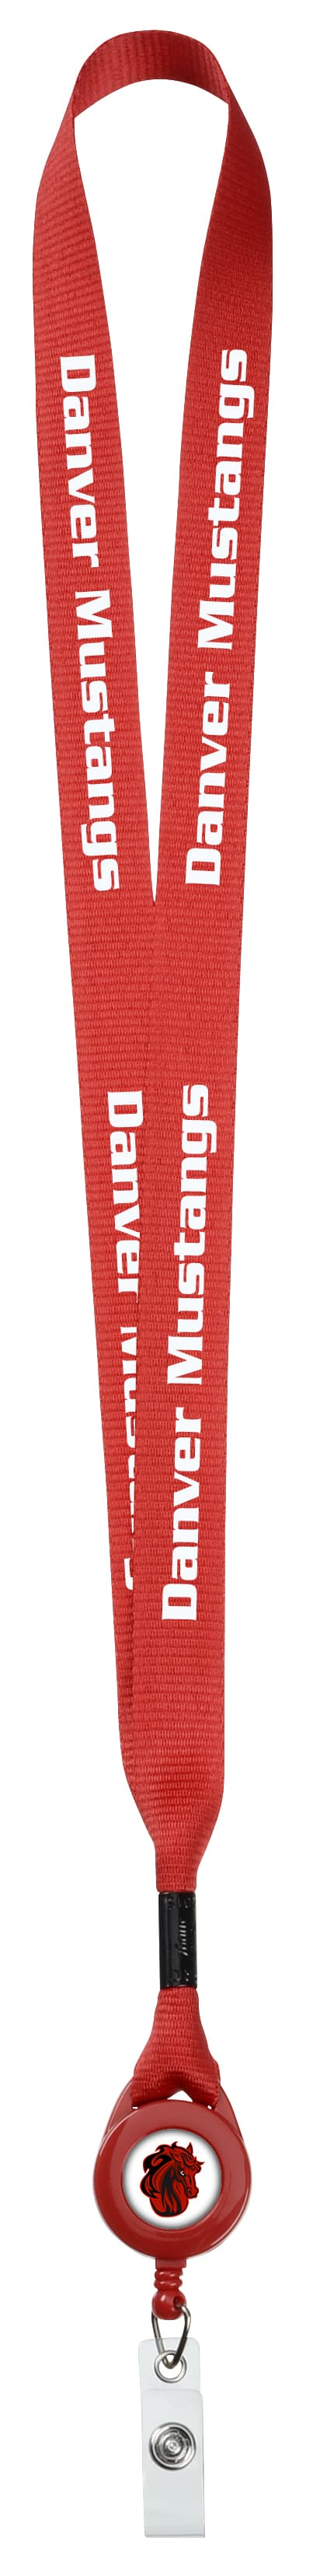 A red Retractable Polyester Lanyard with white text.